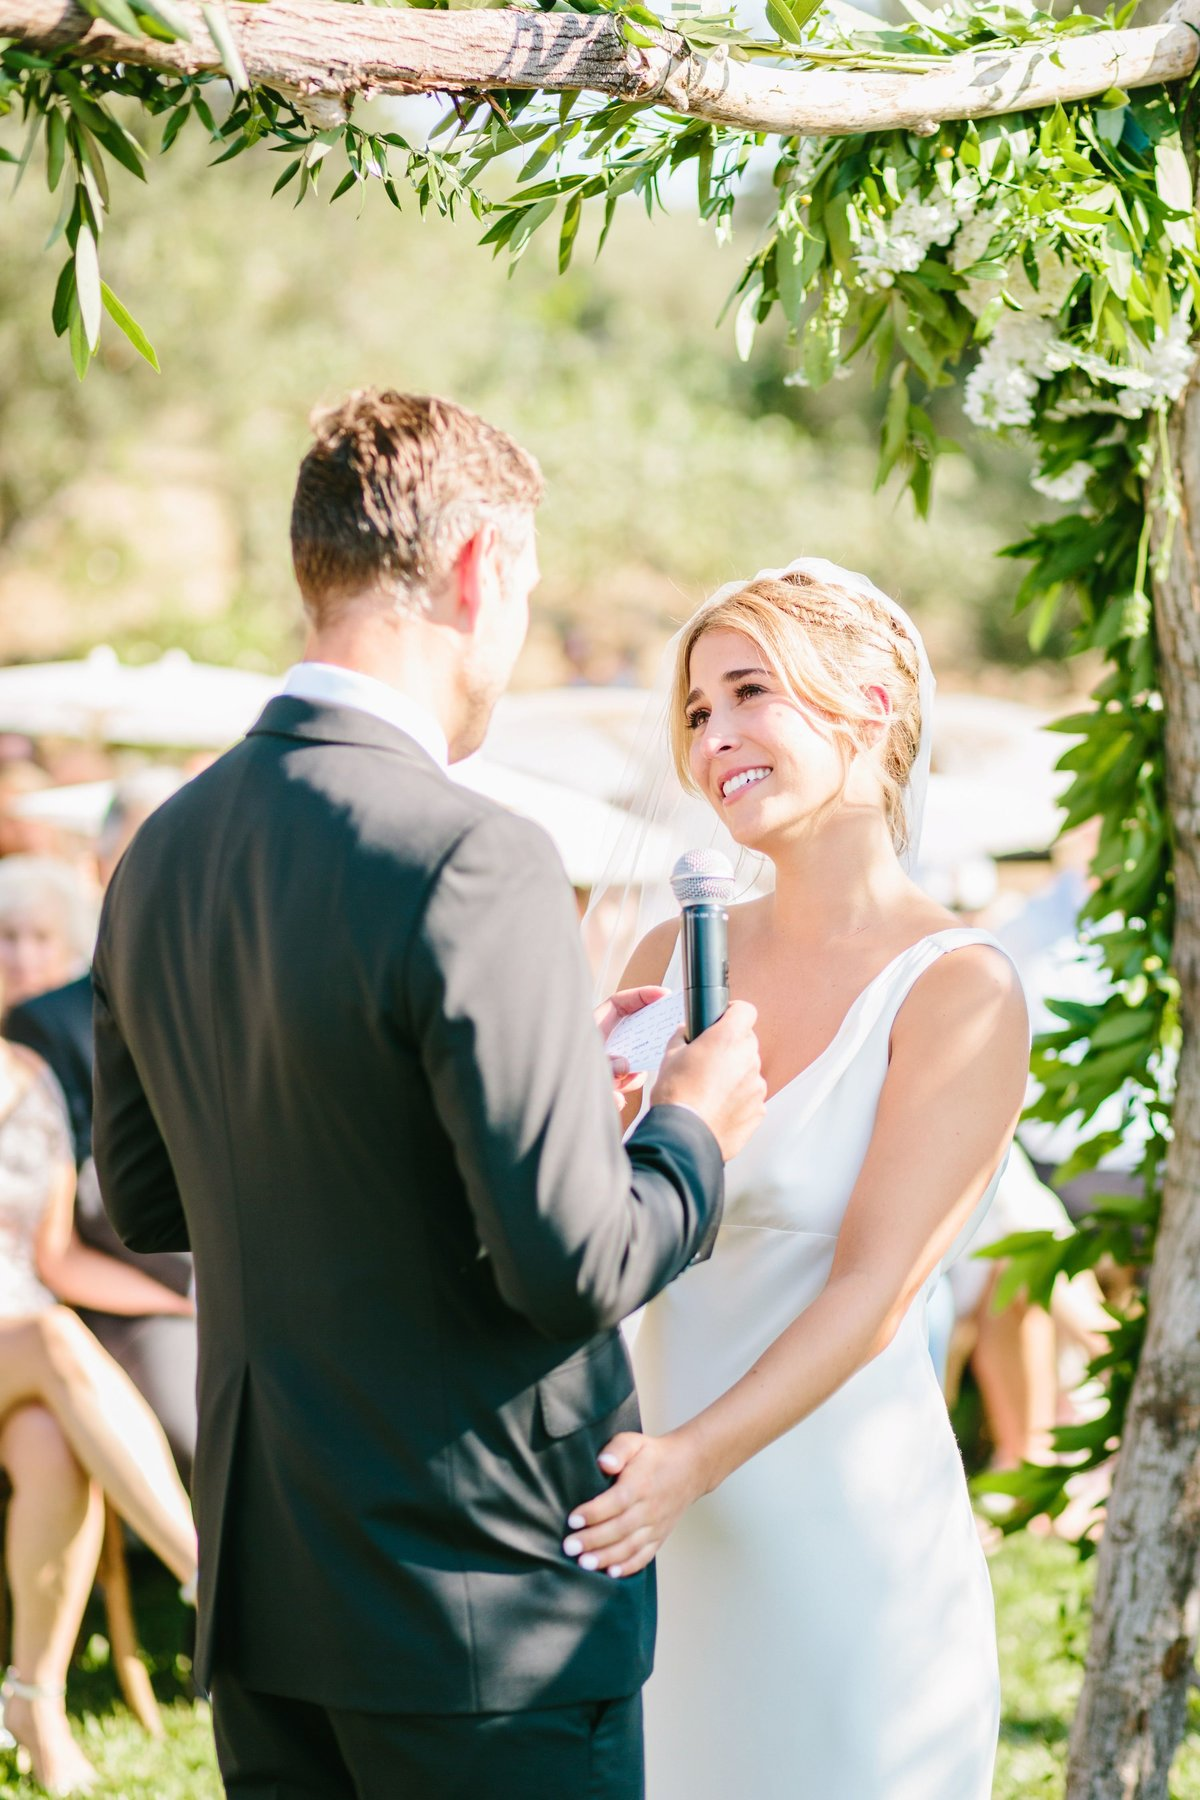 Best California Wedding Photographer-Jodee Debes Photography-58